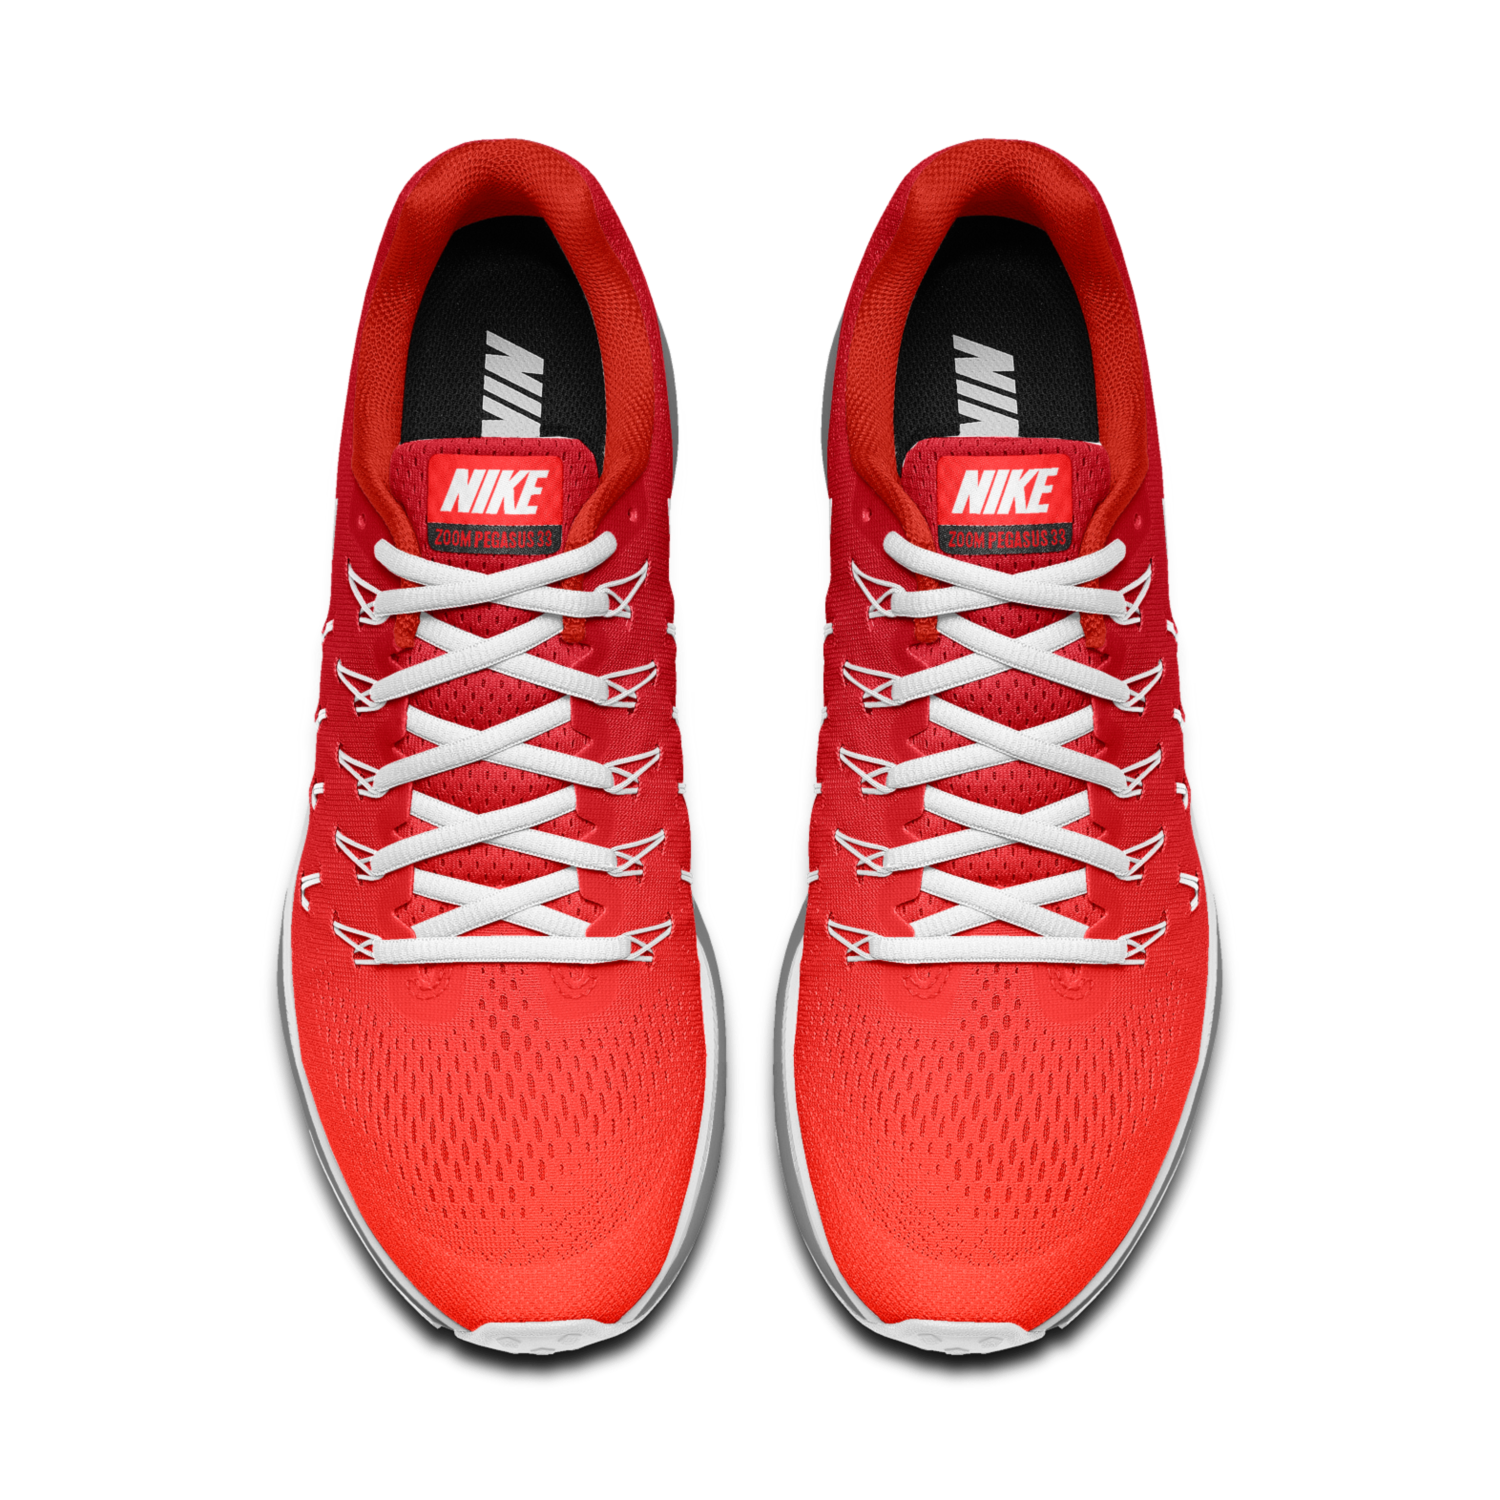 41ece3762283 ... six gold medals with a metallic heel medallion custom graphics and  more. f4d6b fe2ff  where to buy becká bota nike air zoom pegasus 33 id. nike  cz 4095c ...